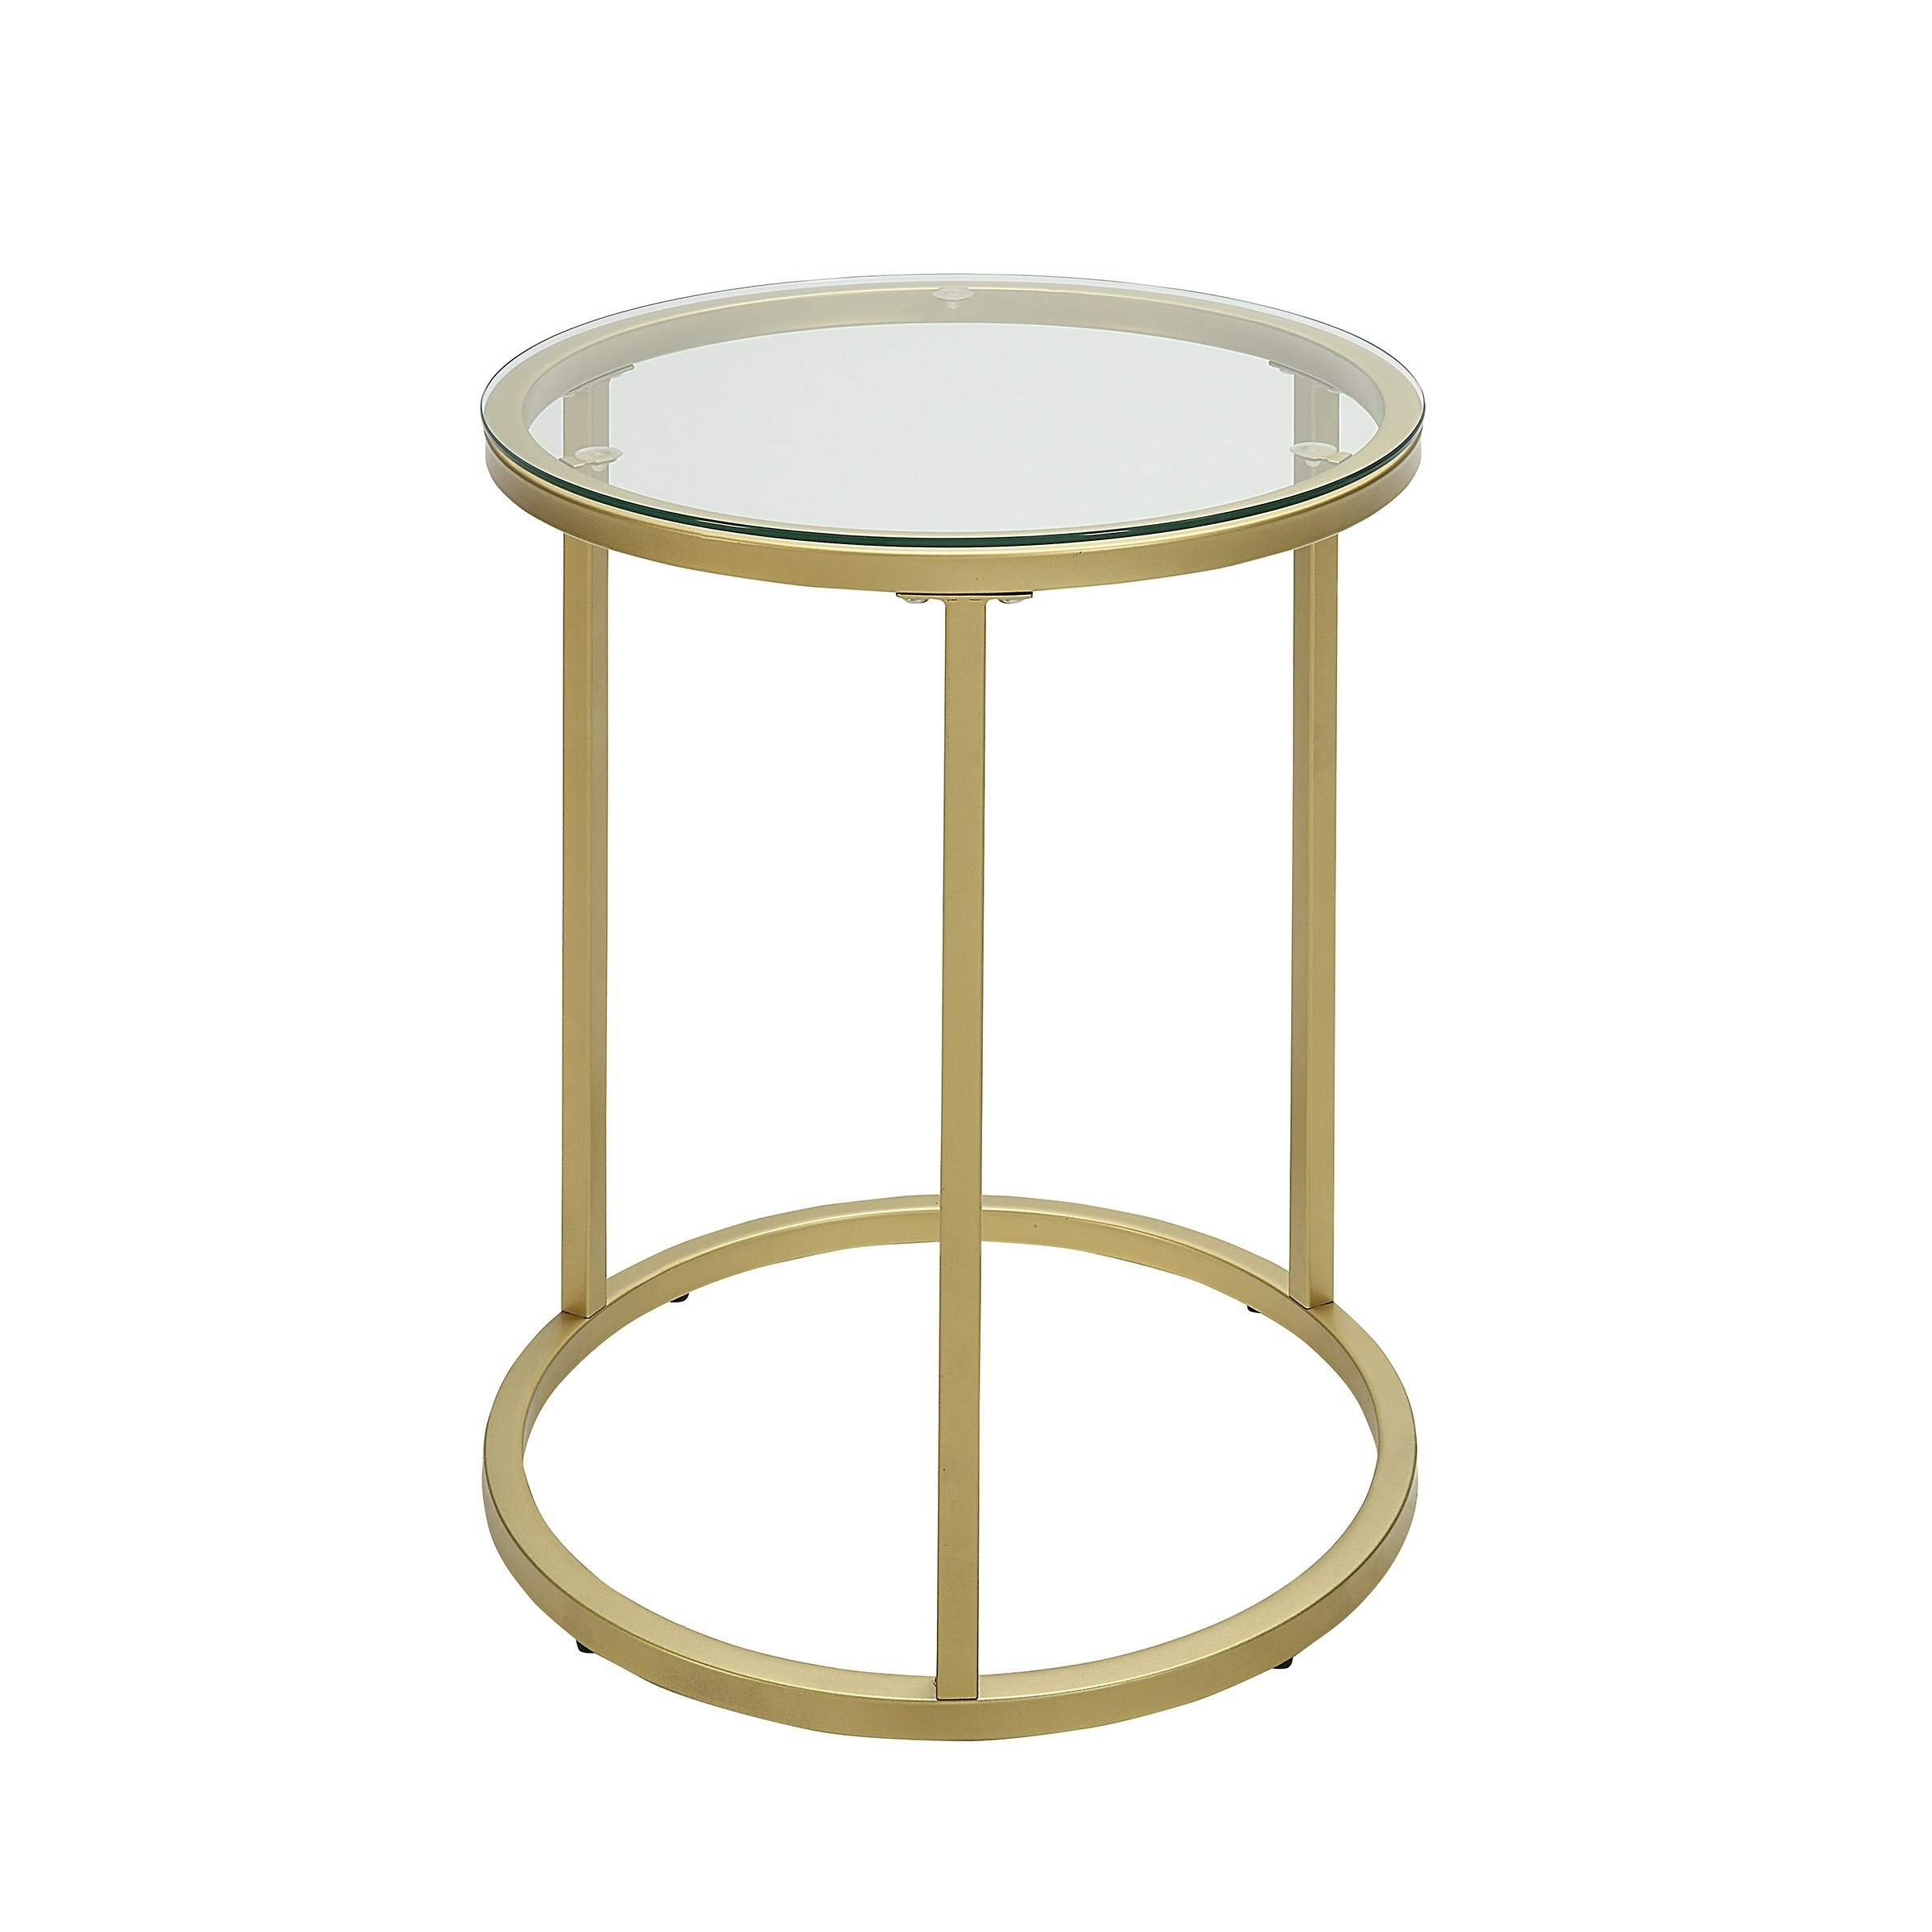 britta inch round glass top gold accent table with free shipping today small silver side reclaimed wood end modern furniture houston perspex nest tables solid drawer pink metal